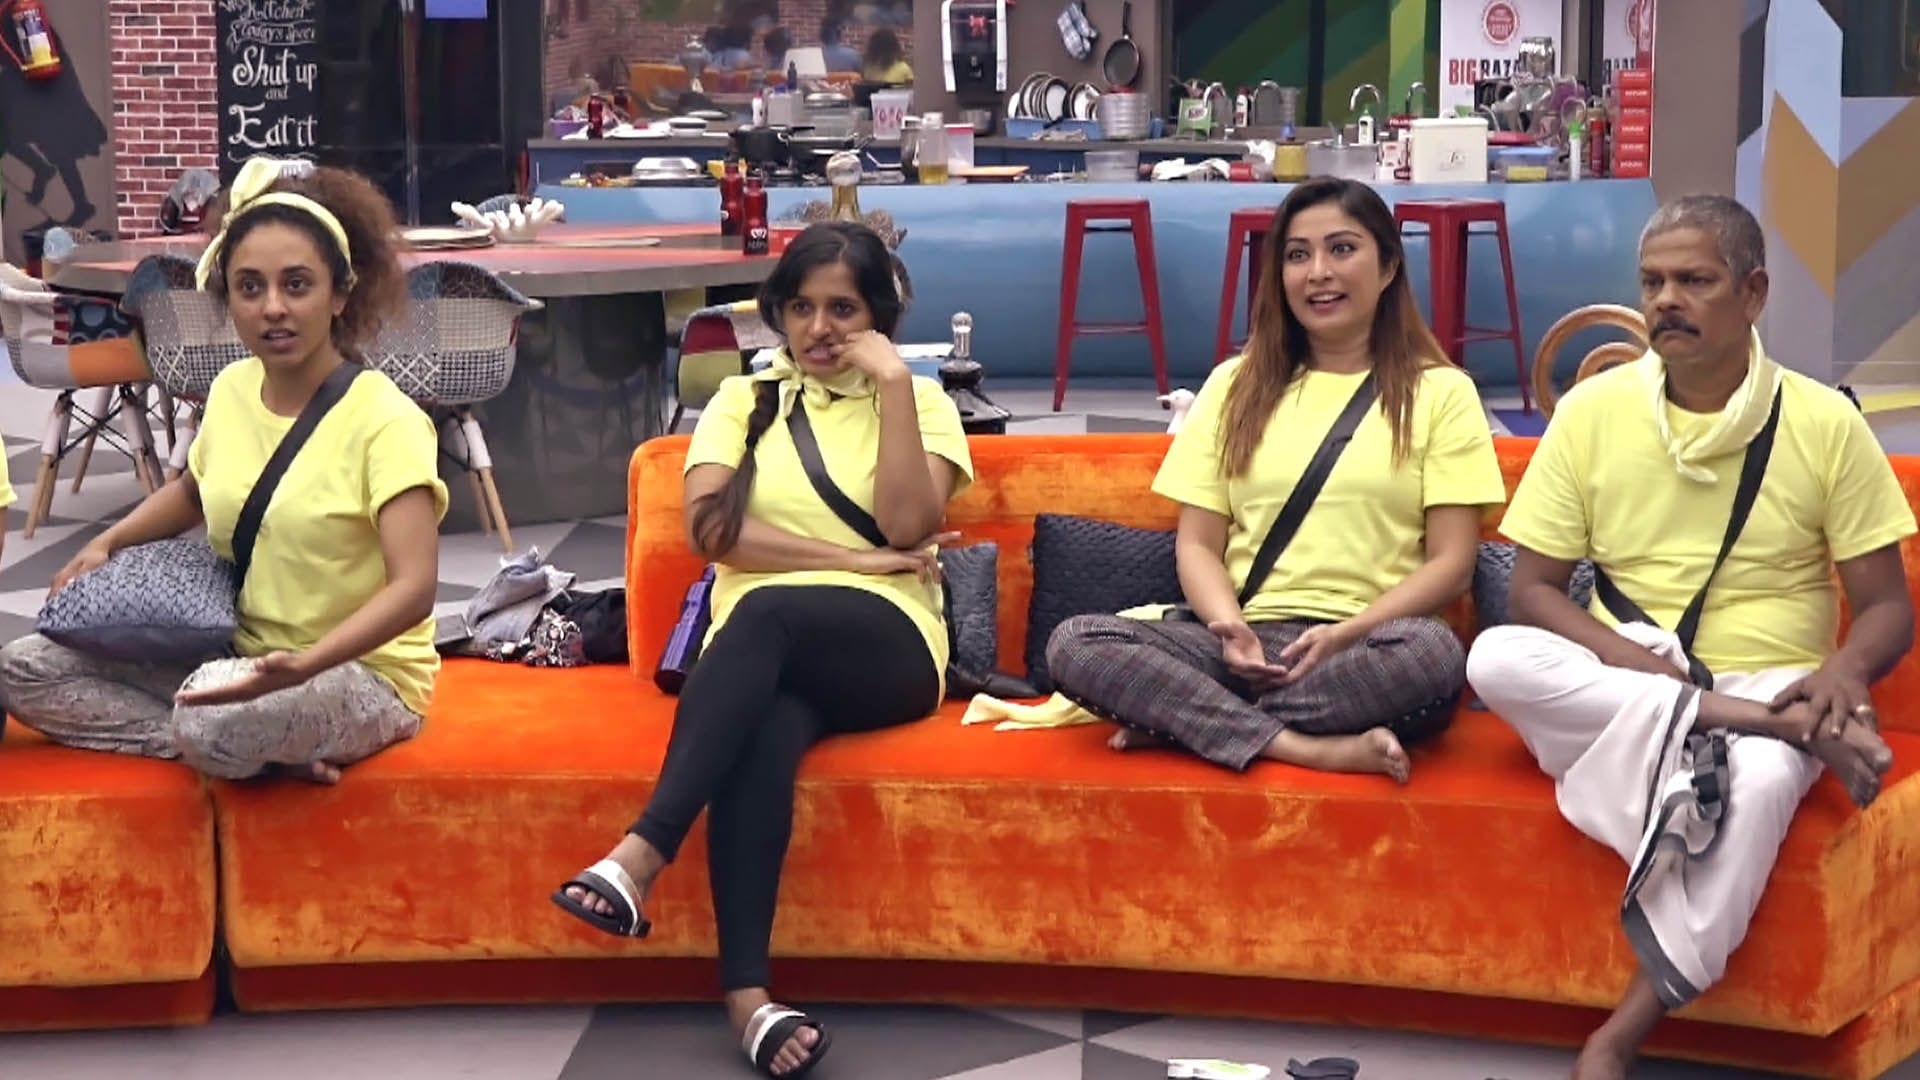 Bigg Boss - Season 1 Episode 59 : Day 58: Compete and Conquer!